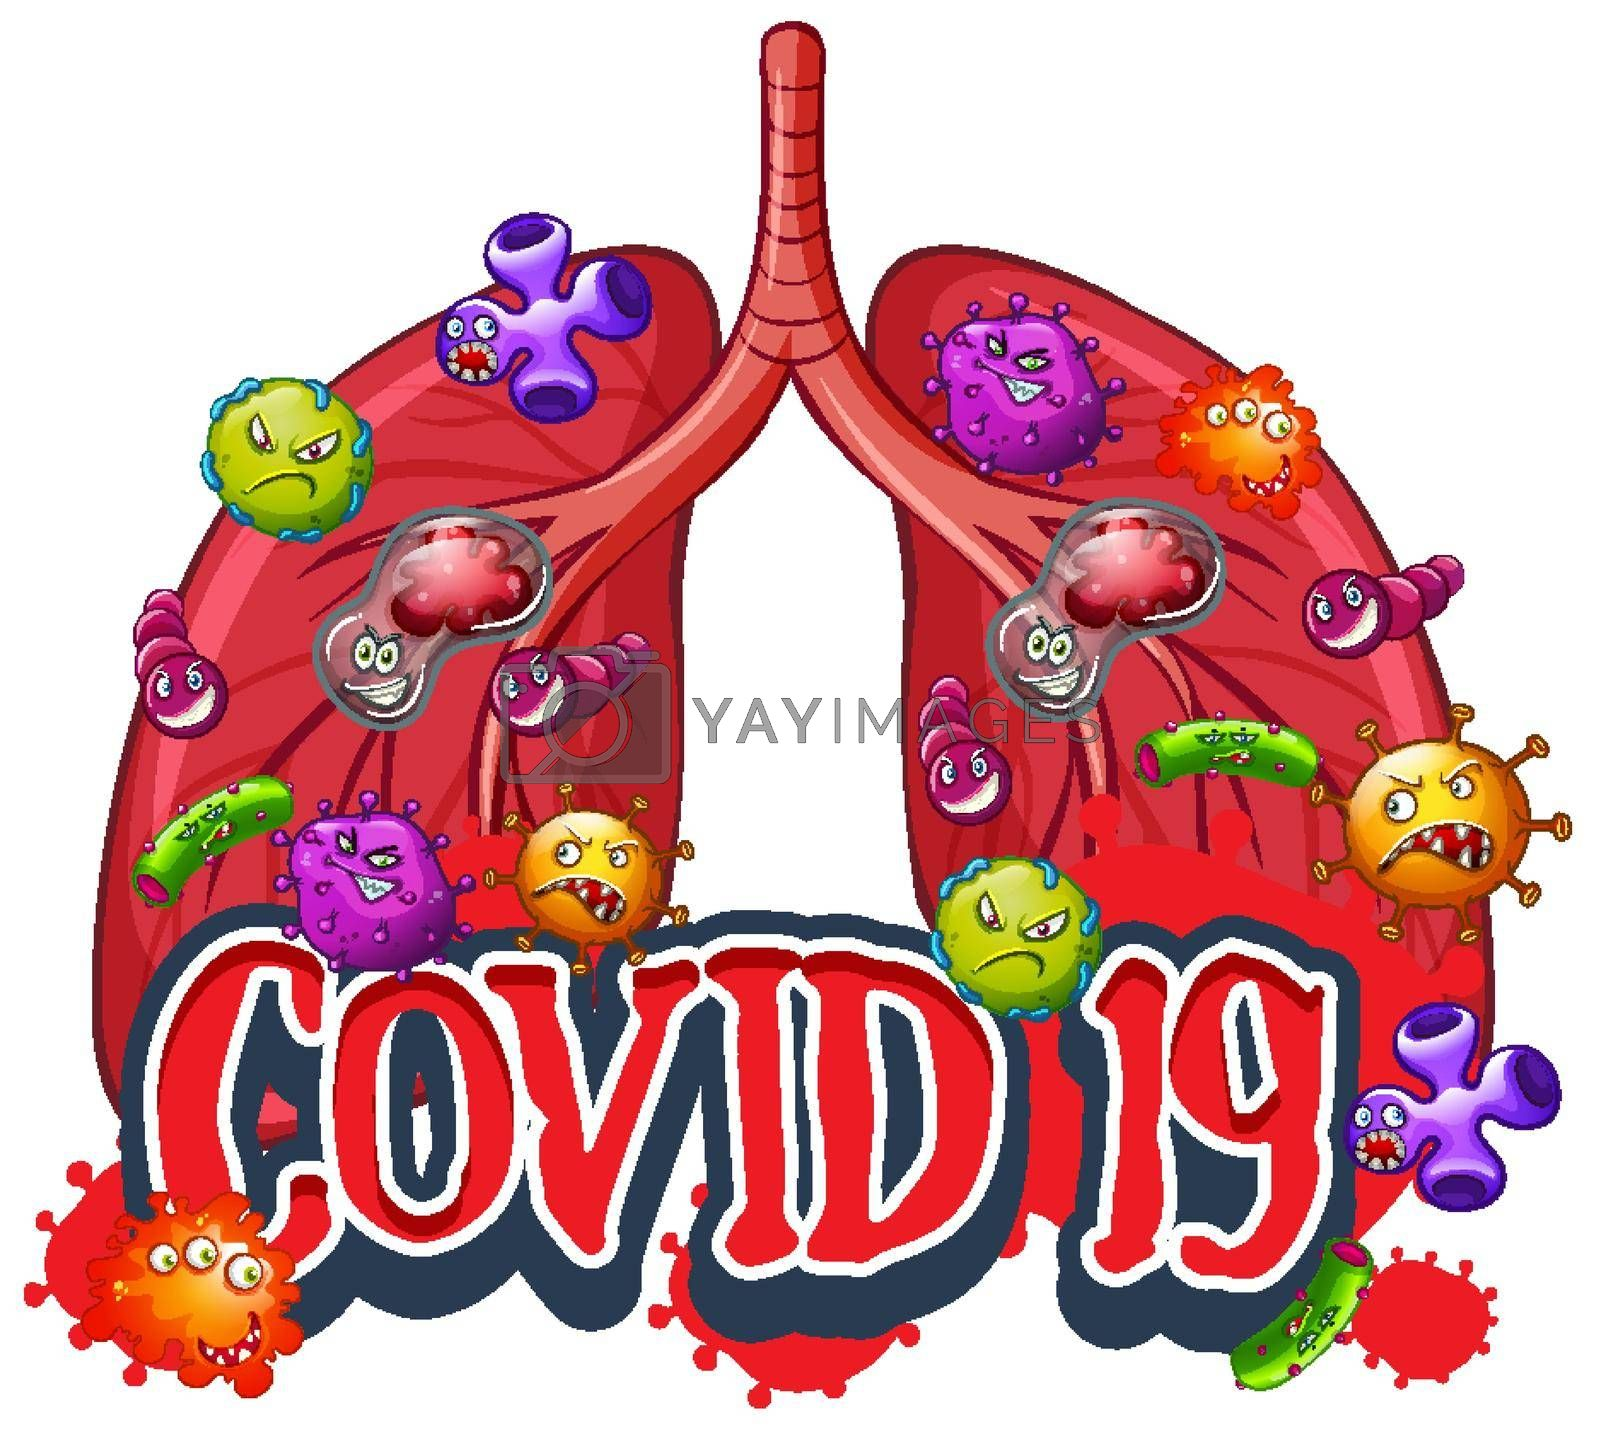 Covid 19 sign template with virus cells in human lungs illustration